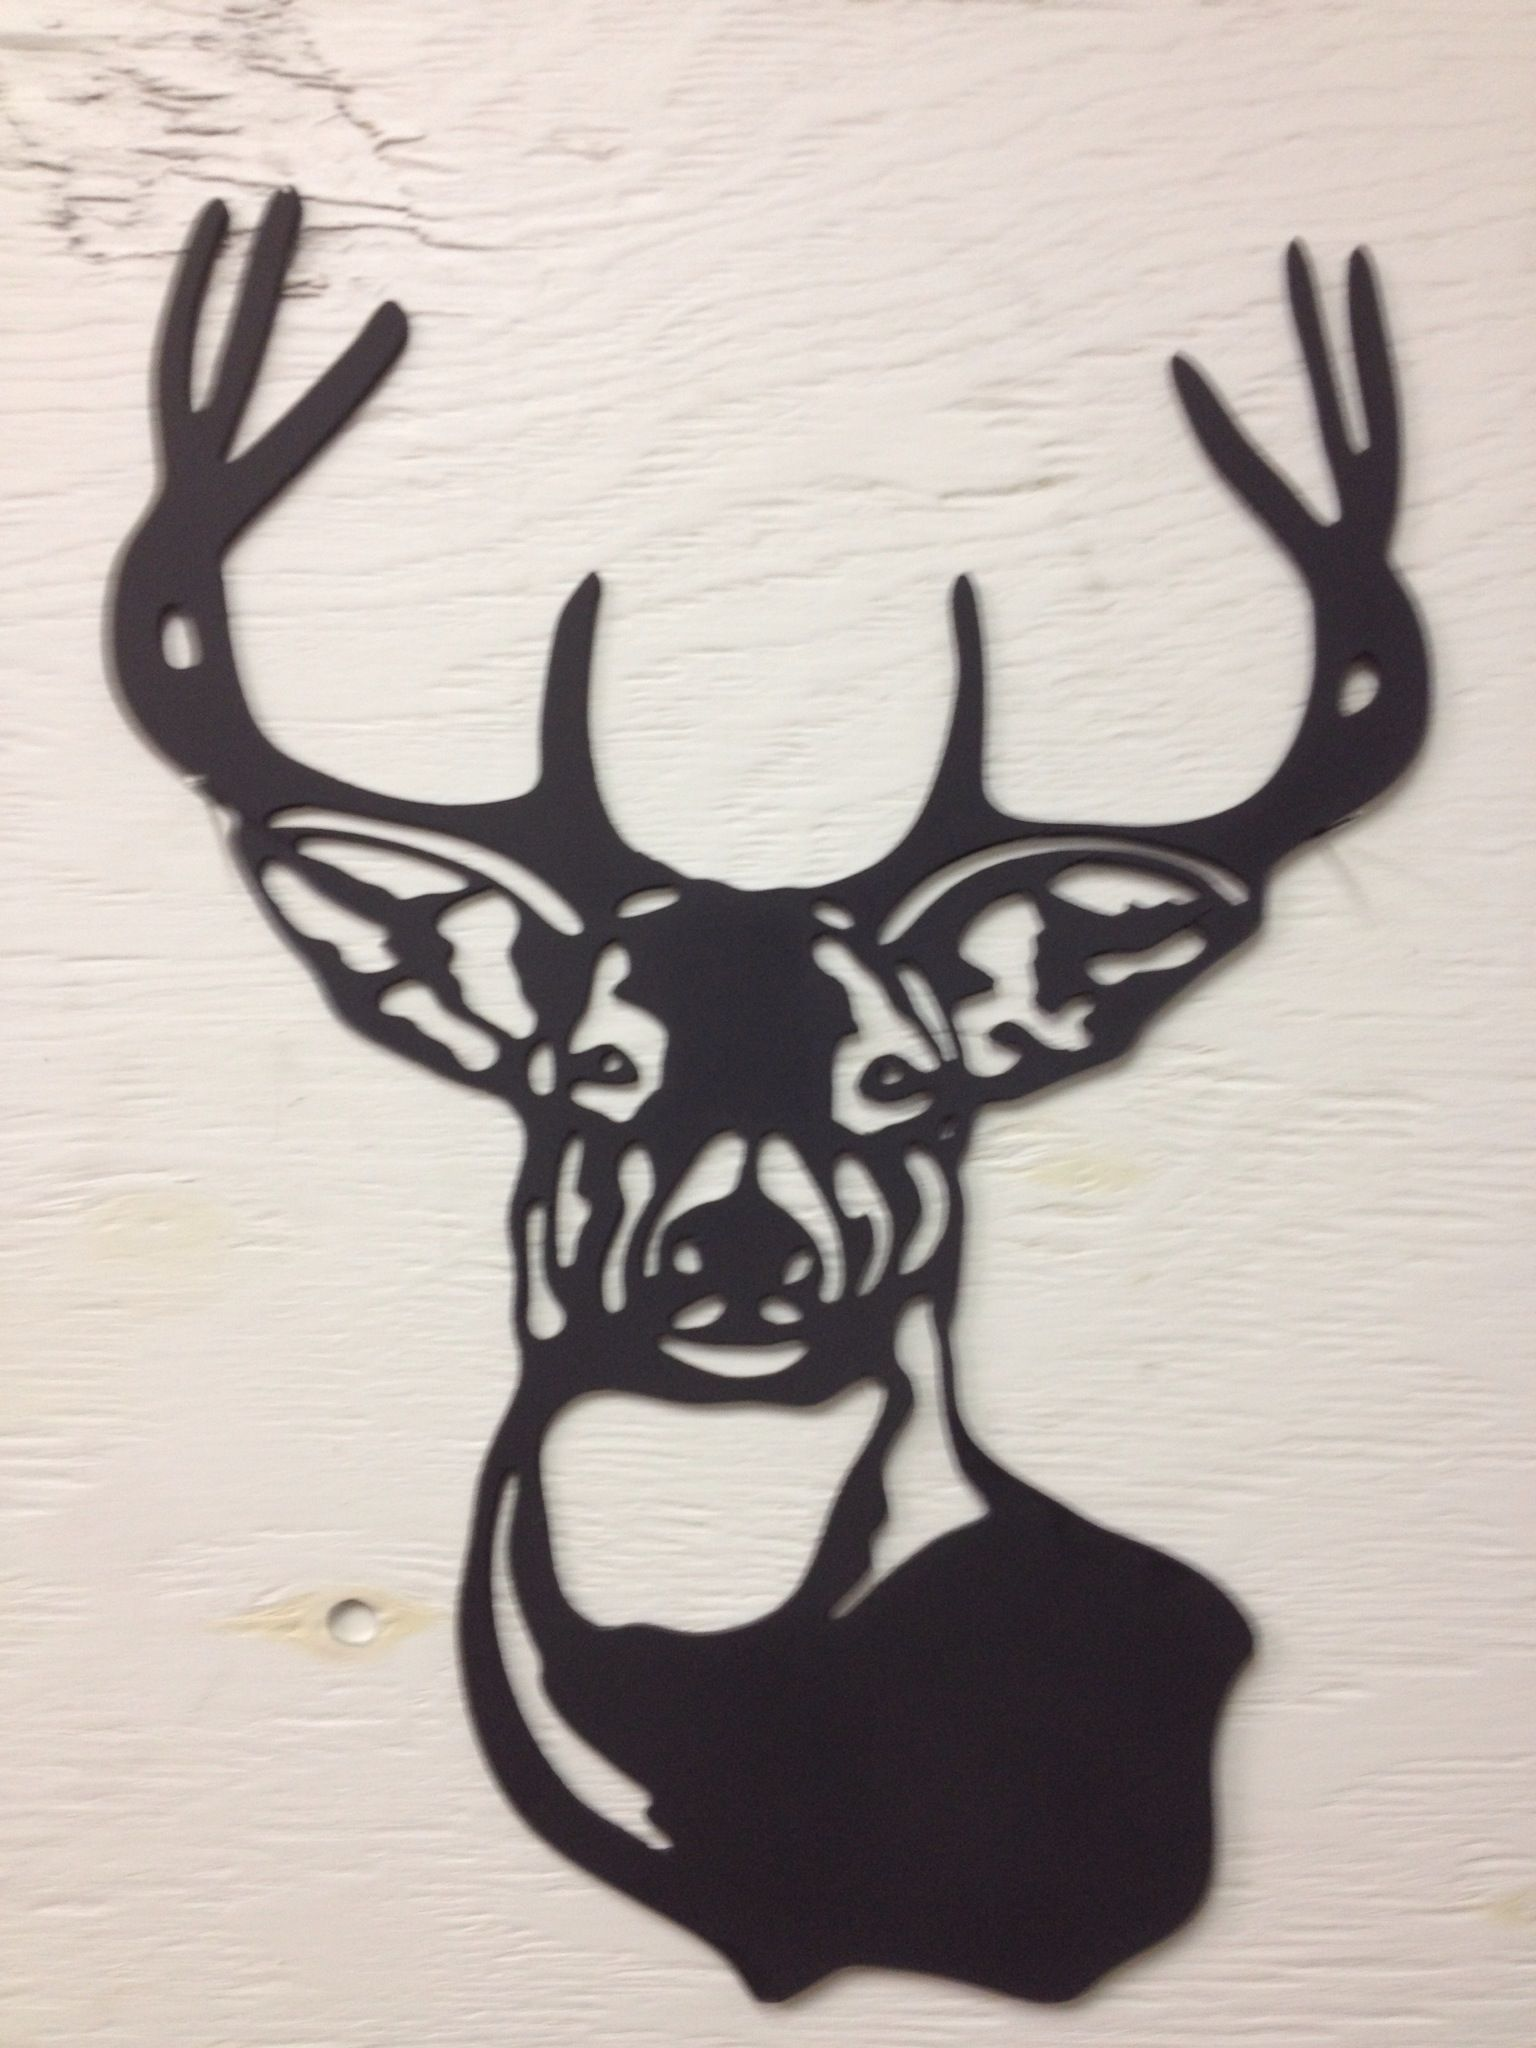 Metal Deer Buck Silhouette 15 X 11 Etsy In 2020 Buck Silhouette Deer Metal Artwork